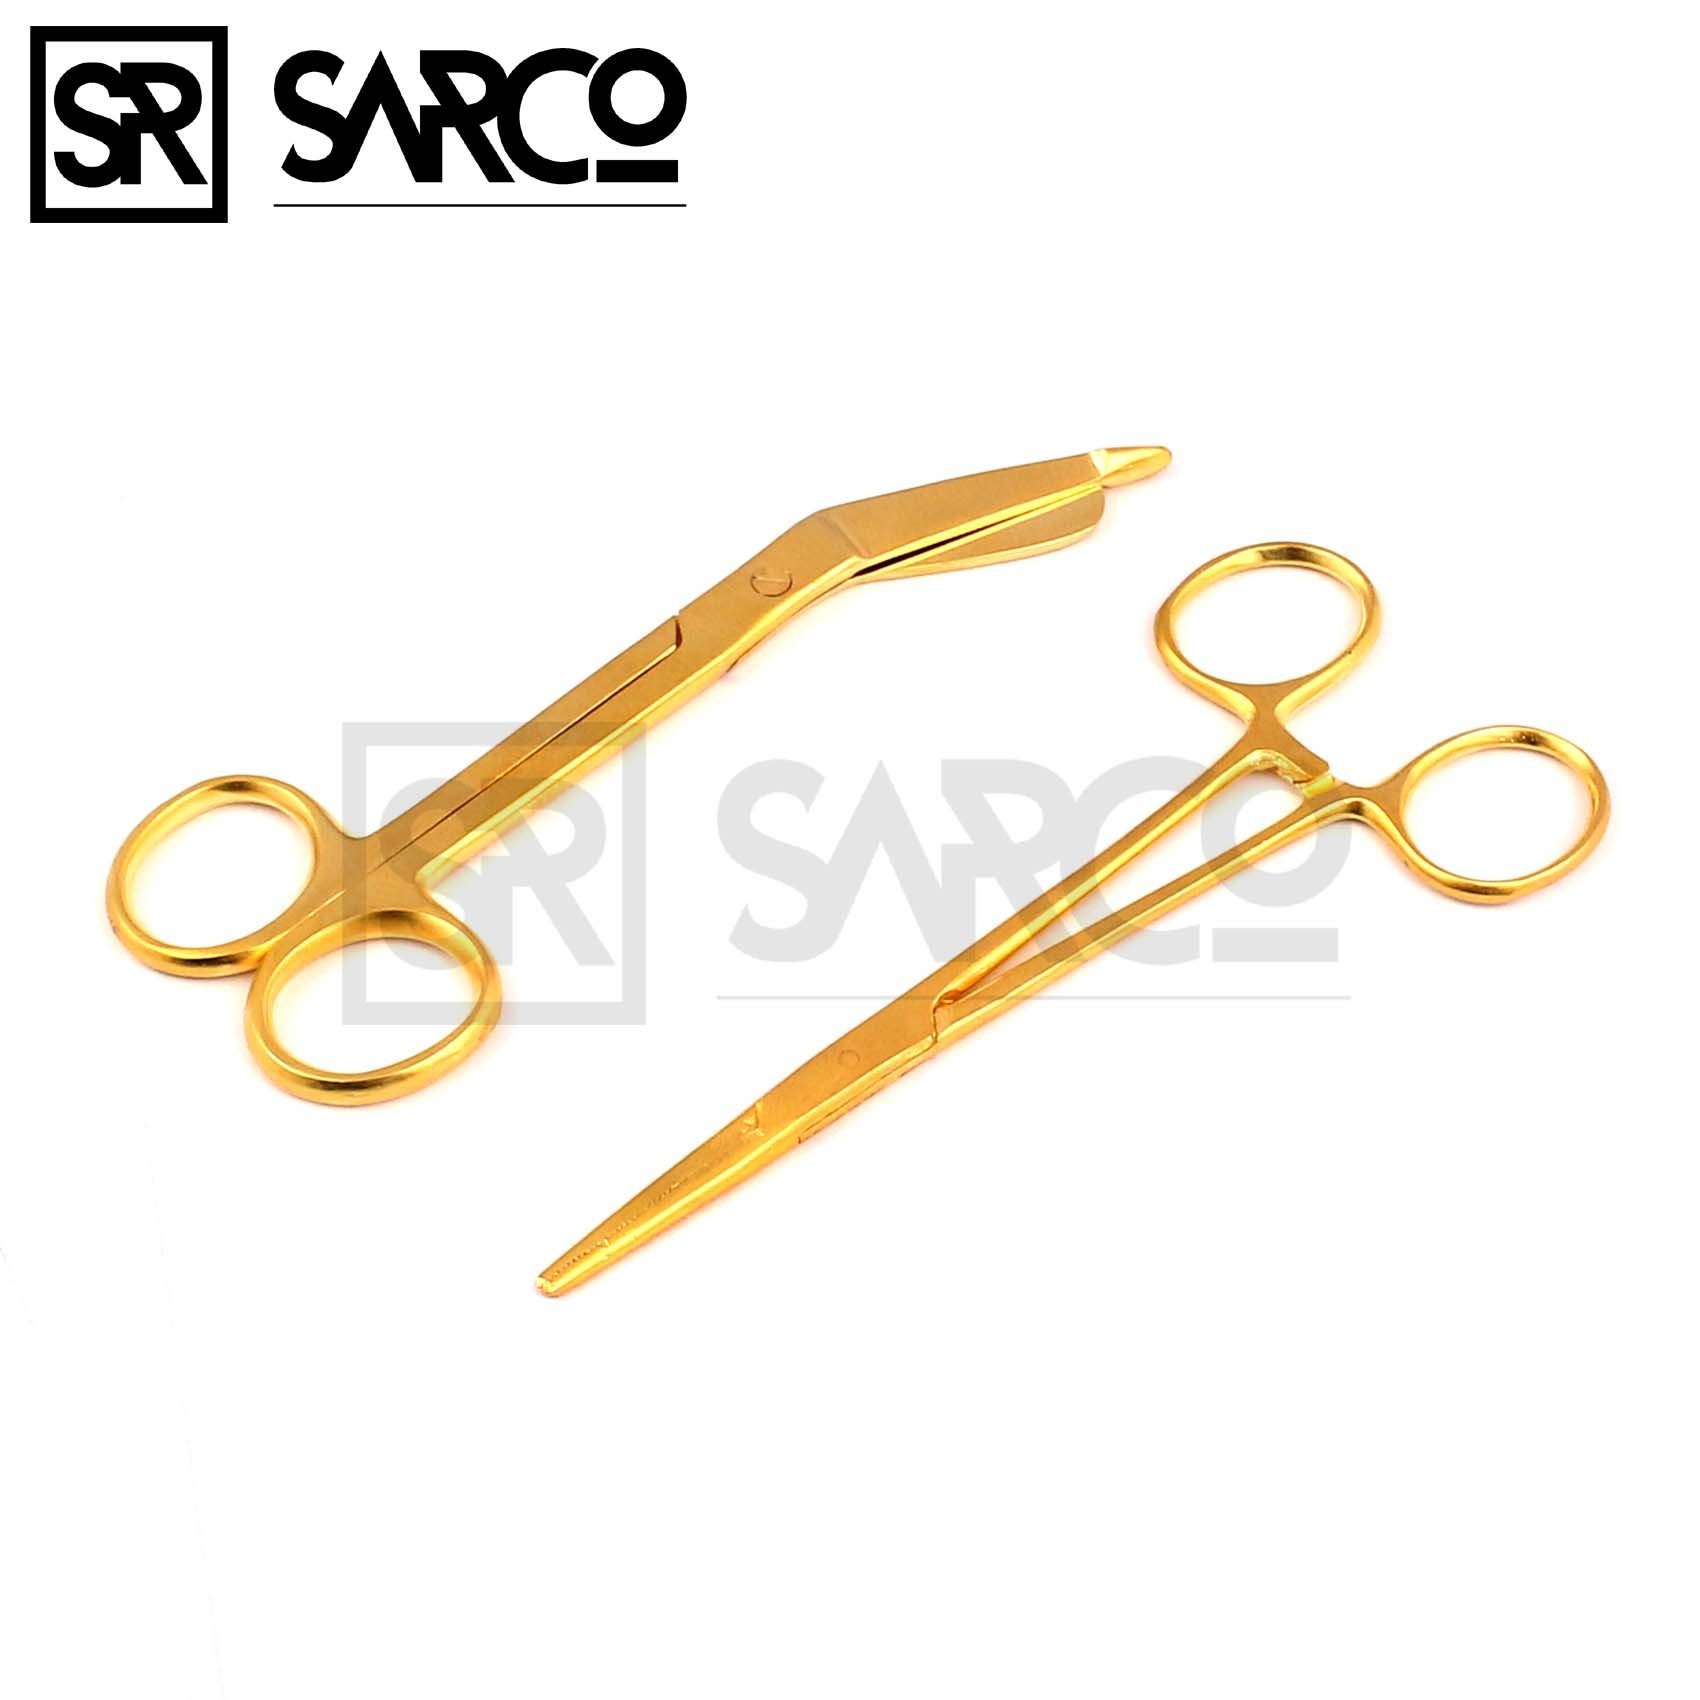 SARCO NEW PREMIUM LISTER BANDAGE SCISSORS 5.5'' + HEMOSTAT FORCEPS STRAIGHT GOLD COLOR STAINLESS STEEL ( SET OF 2 )